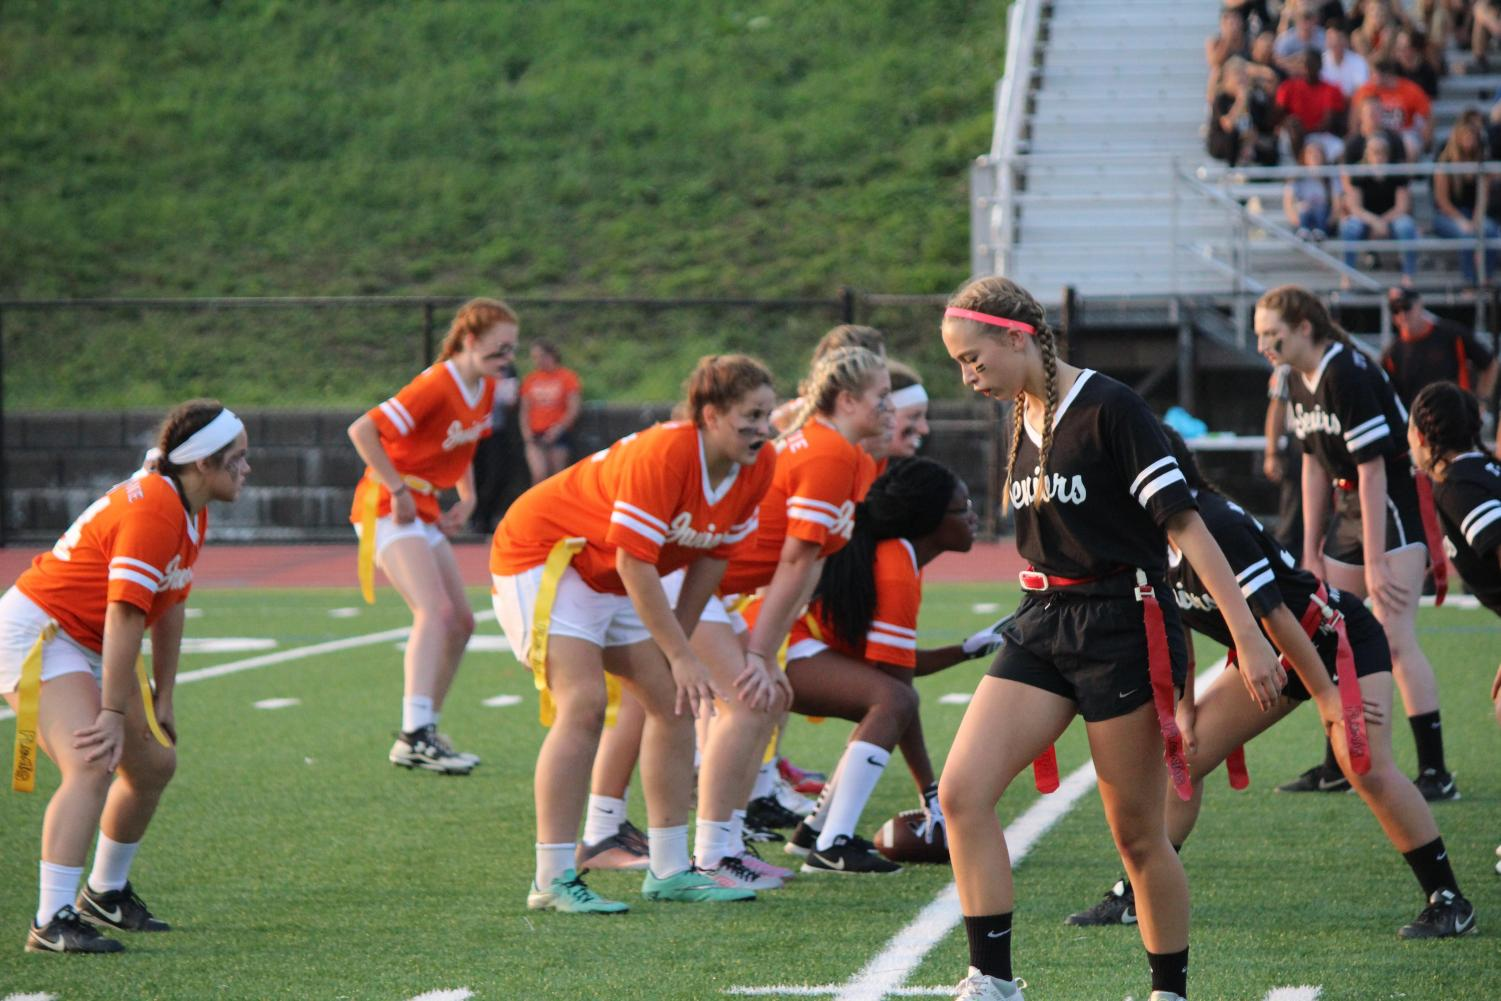 Juniors and seniors toe the line of scrimmage during their game last year. The seniors won 33-6.